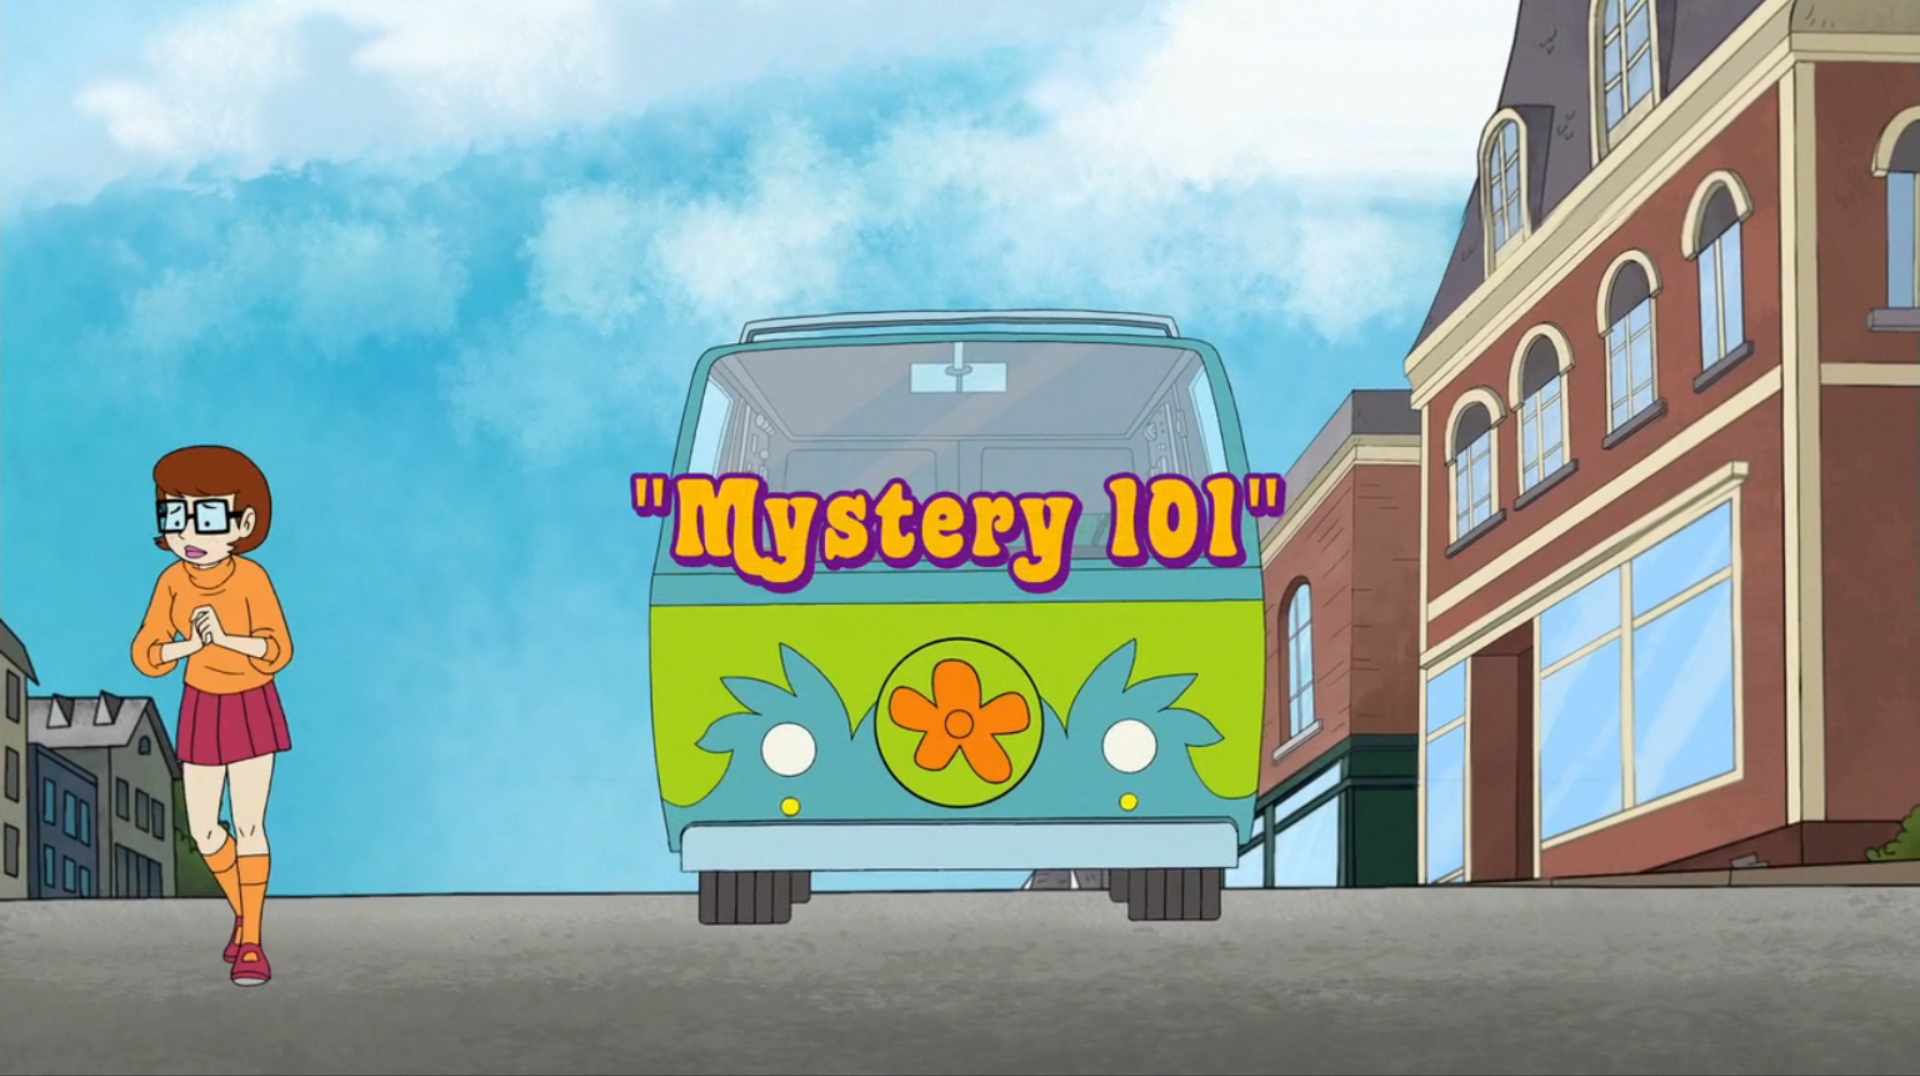 http://vignette4.wikia.nocookie.net/scoobydoo/images/4/43/Mystery_101_title_card.png/revision/